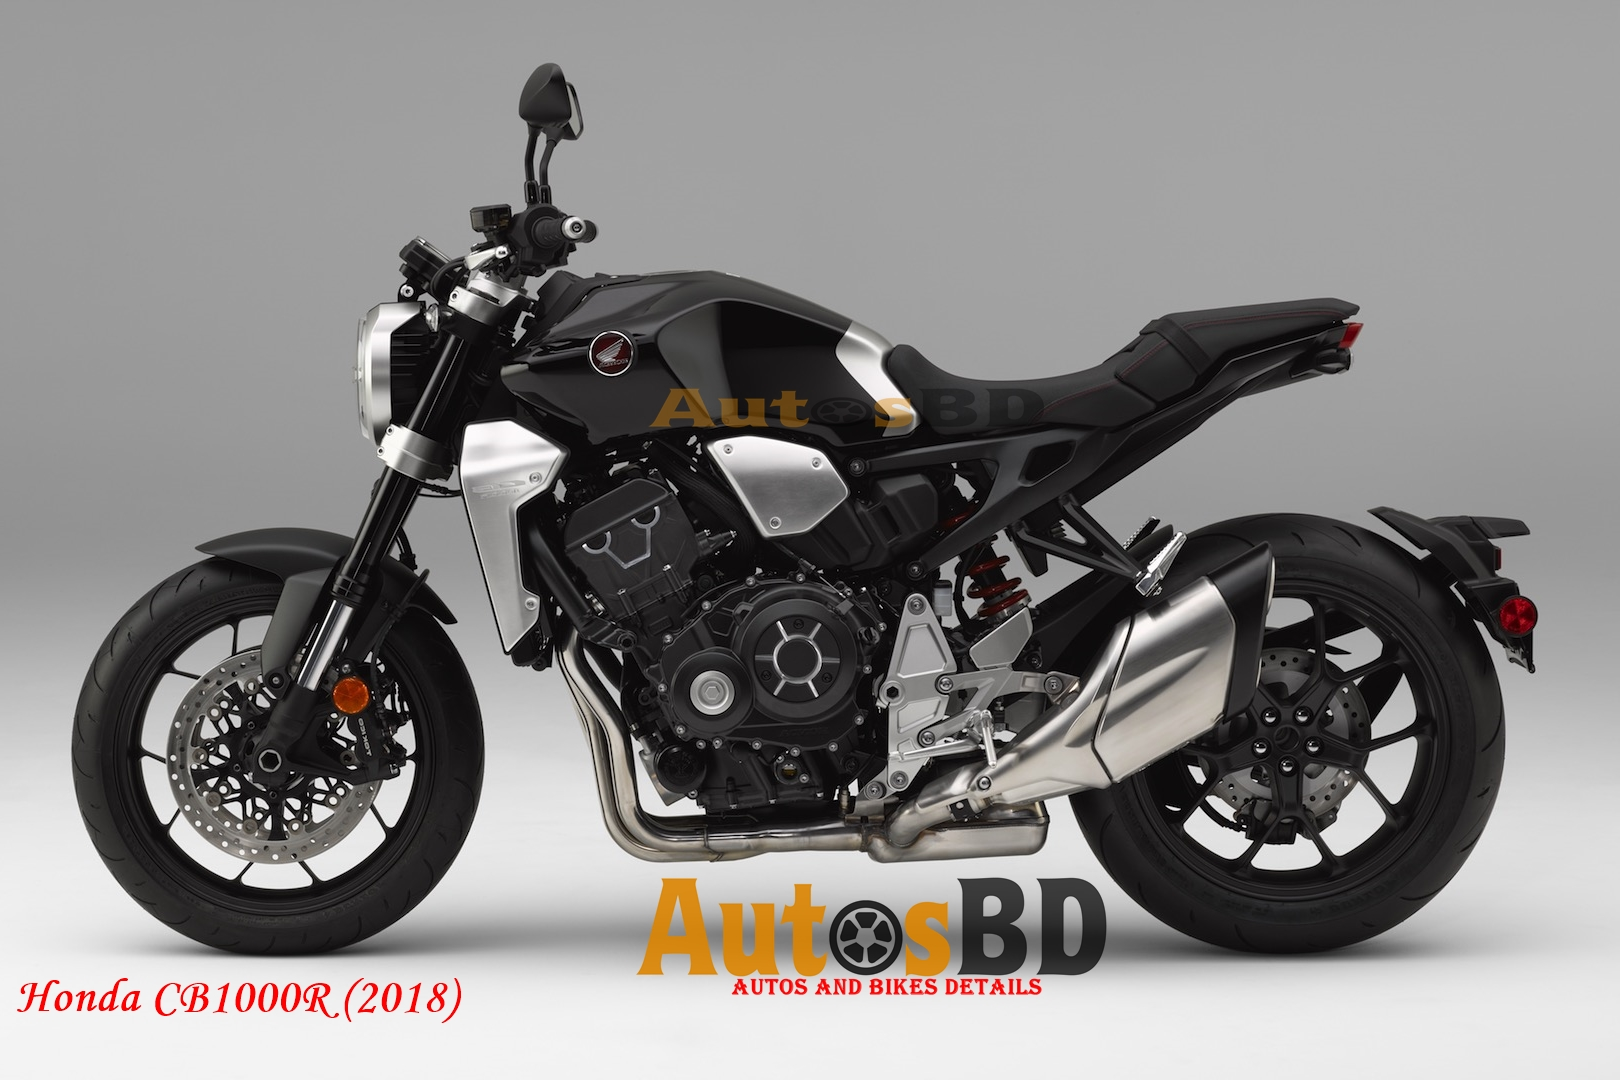 Honda CB1000R (2018) Motorcycle Specification